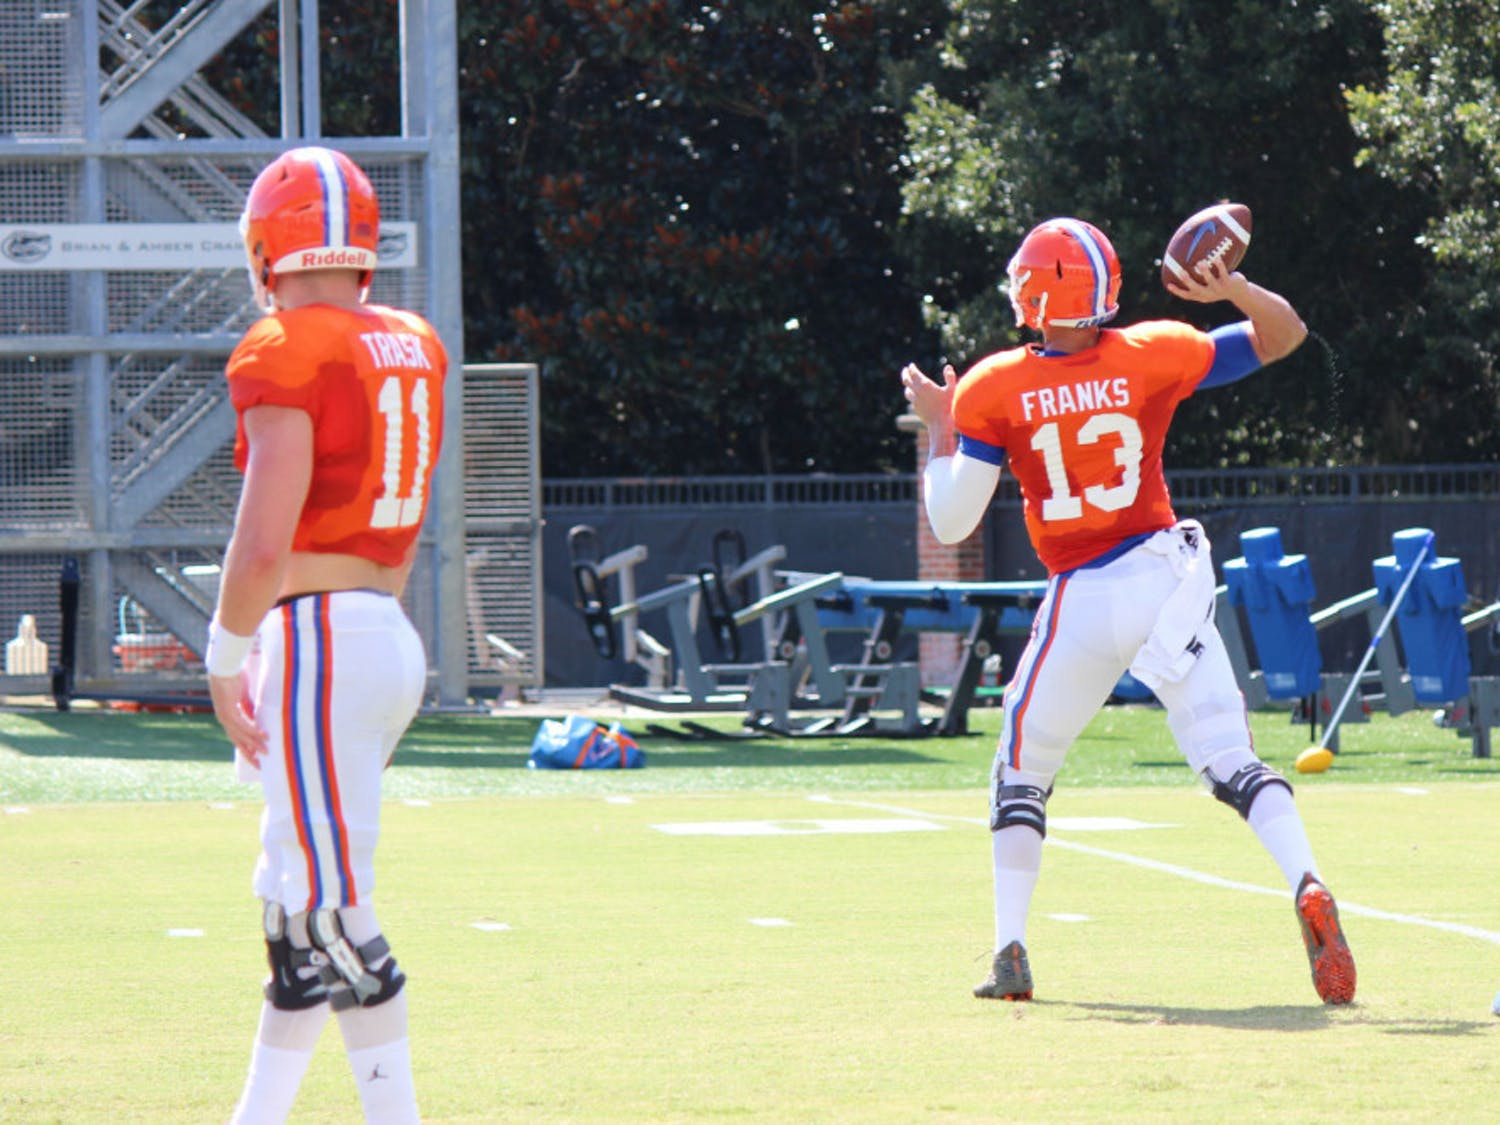 Redshirt sophomore Feleipe Franks (right) is competing with redshirt sophomore Kyle Trask (left) for the starting quarterback position. Franks played in all 11 games for UF last season and started eight.